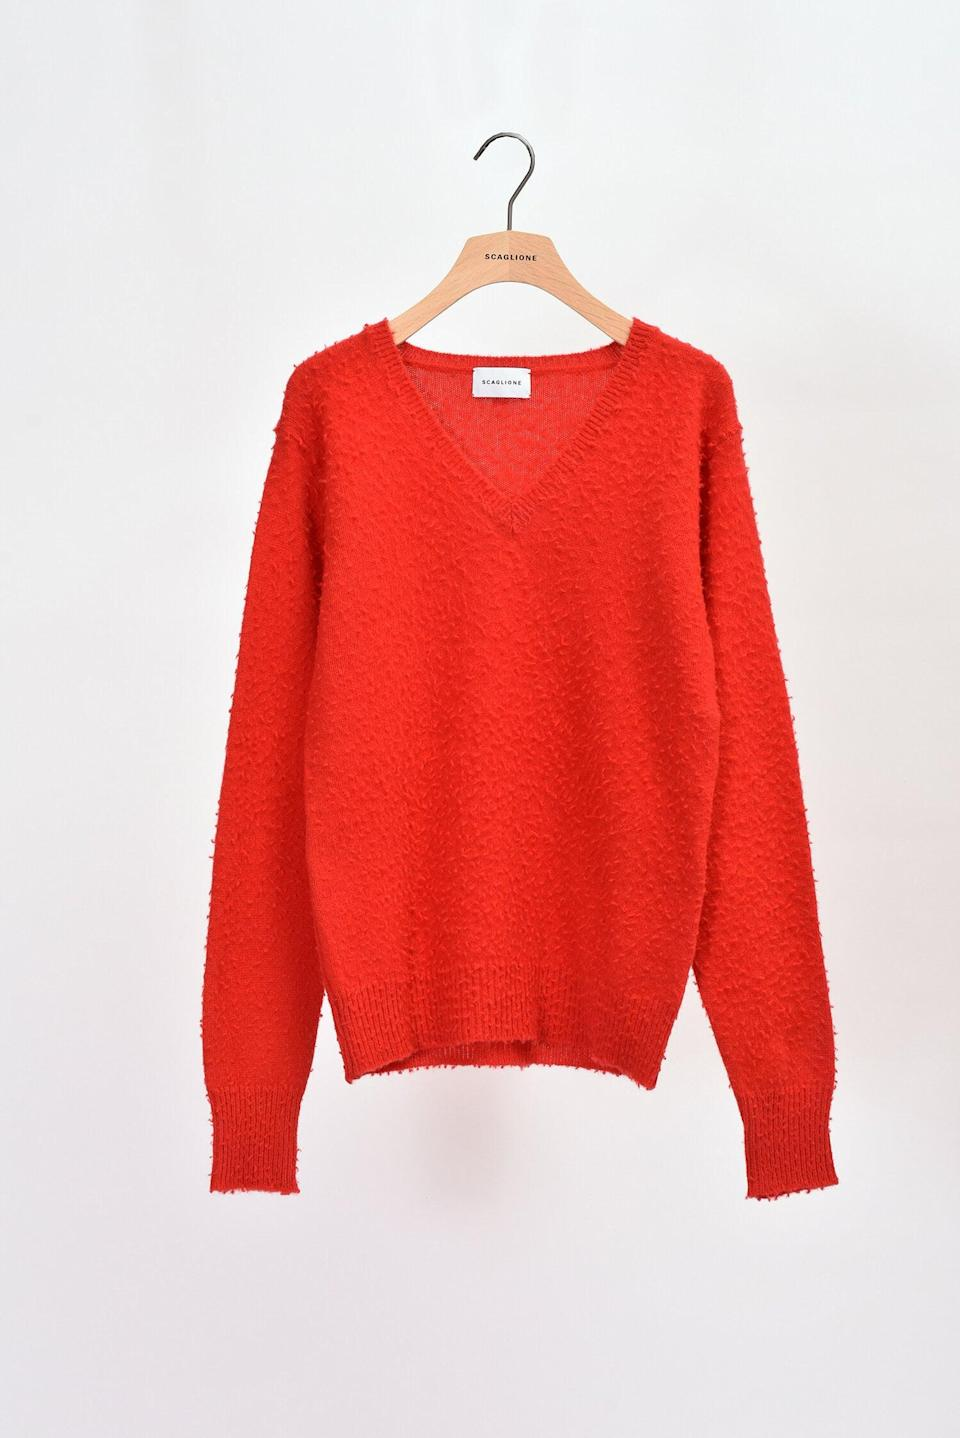 """<p><span>Scaglione Slim Red Casentino V-Neck</span> ($272)</p> <p>""""I love gifting people things with a story. I just got one of my traveller friends this sweater because of the Panno Casentino was invented in the 1800s in Tuscany for durability on the road. Audrey Hepburn also wears an amazing coat of this material, the orange one in Breakfast at Tiffany's!"""" - NR</p>"""